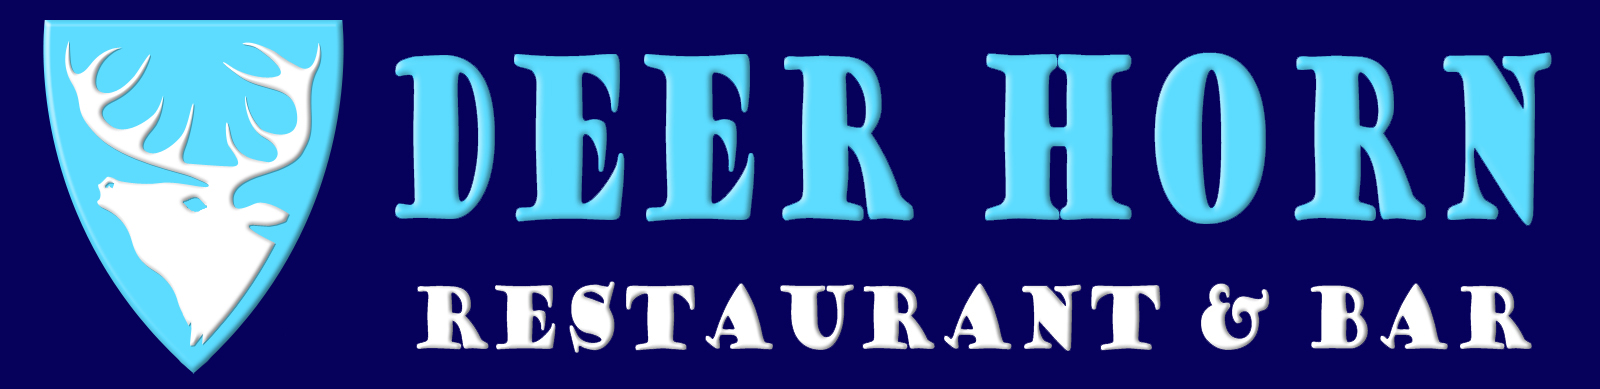 Deer Horn Restaurant & Bar